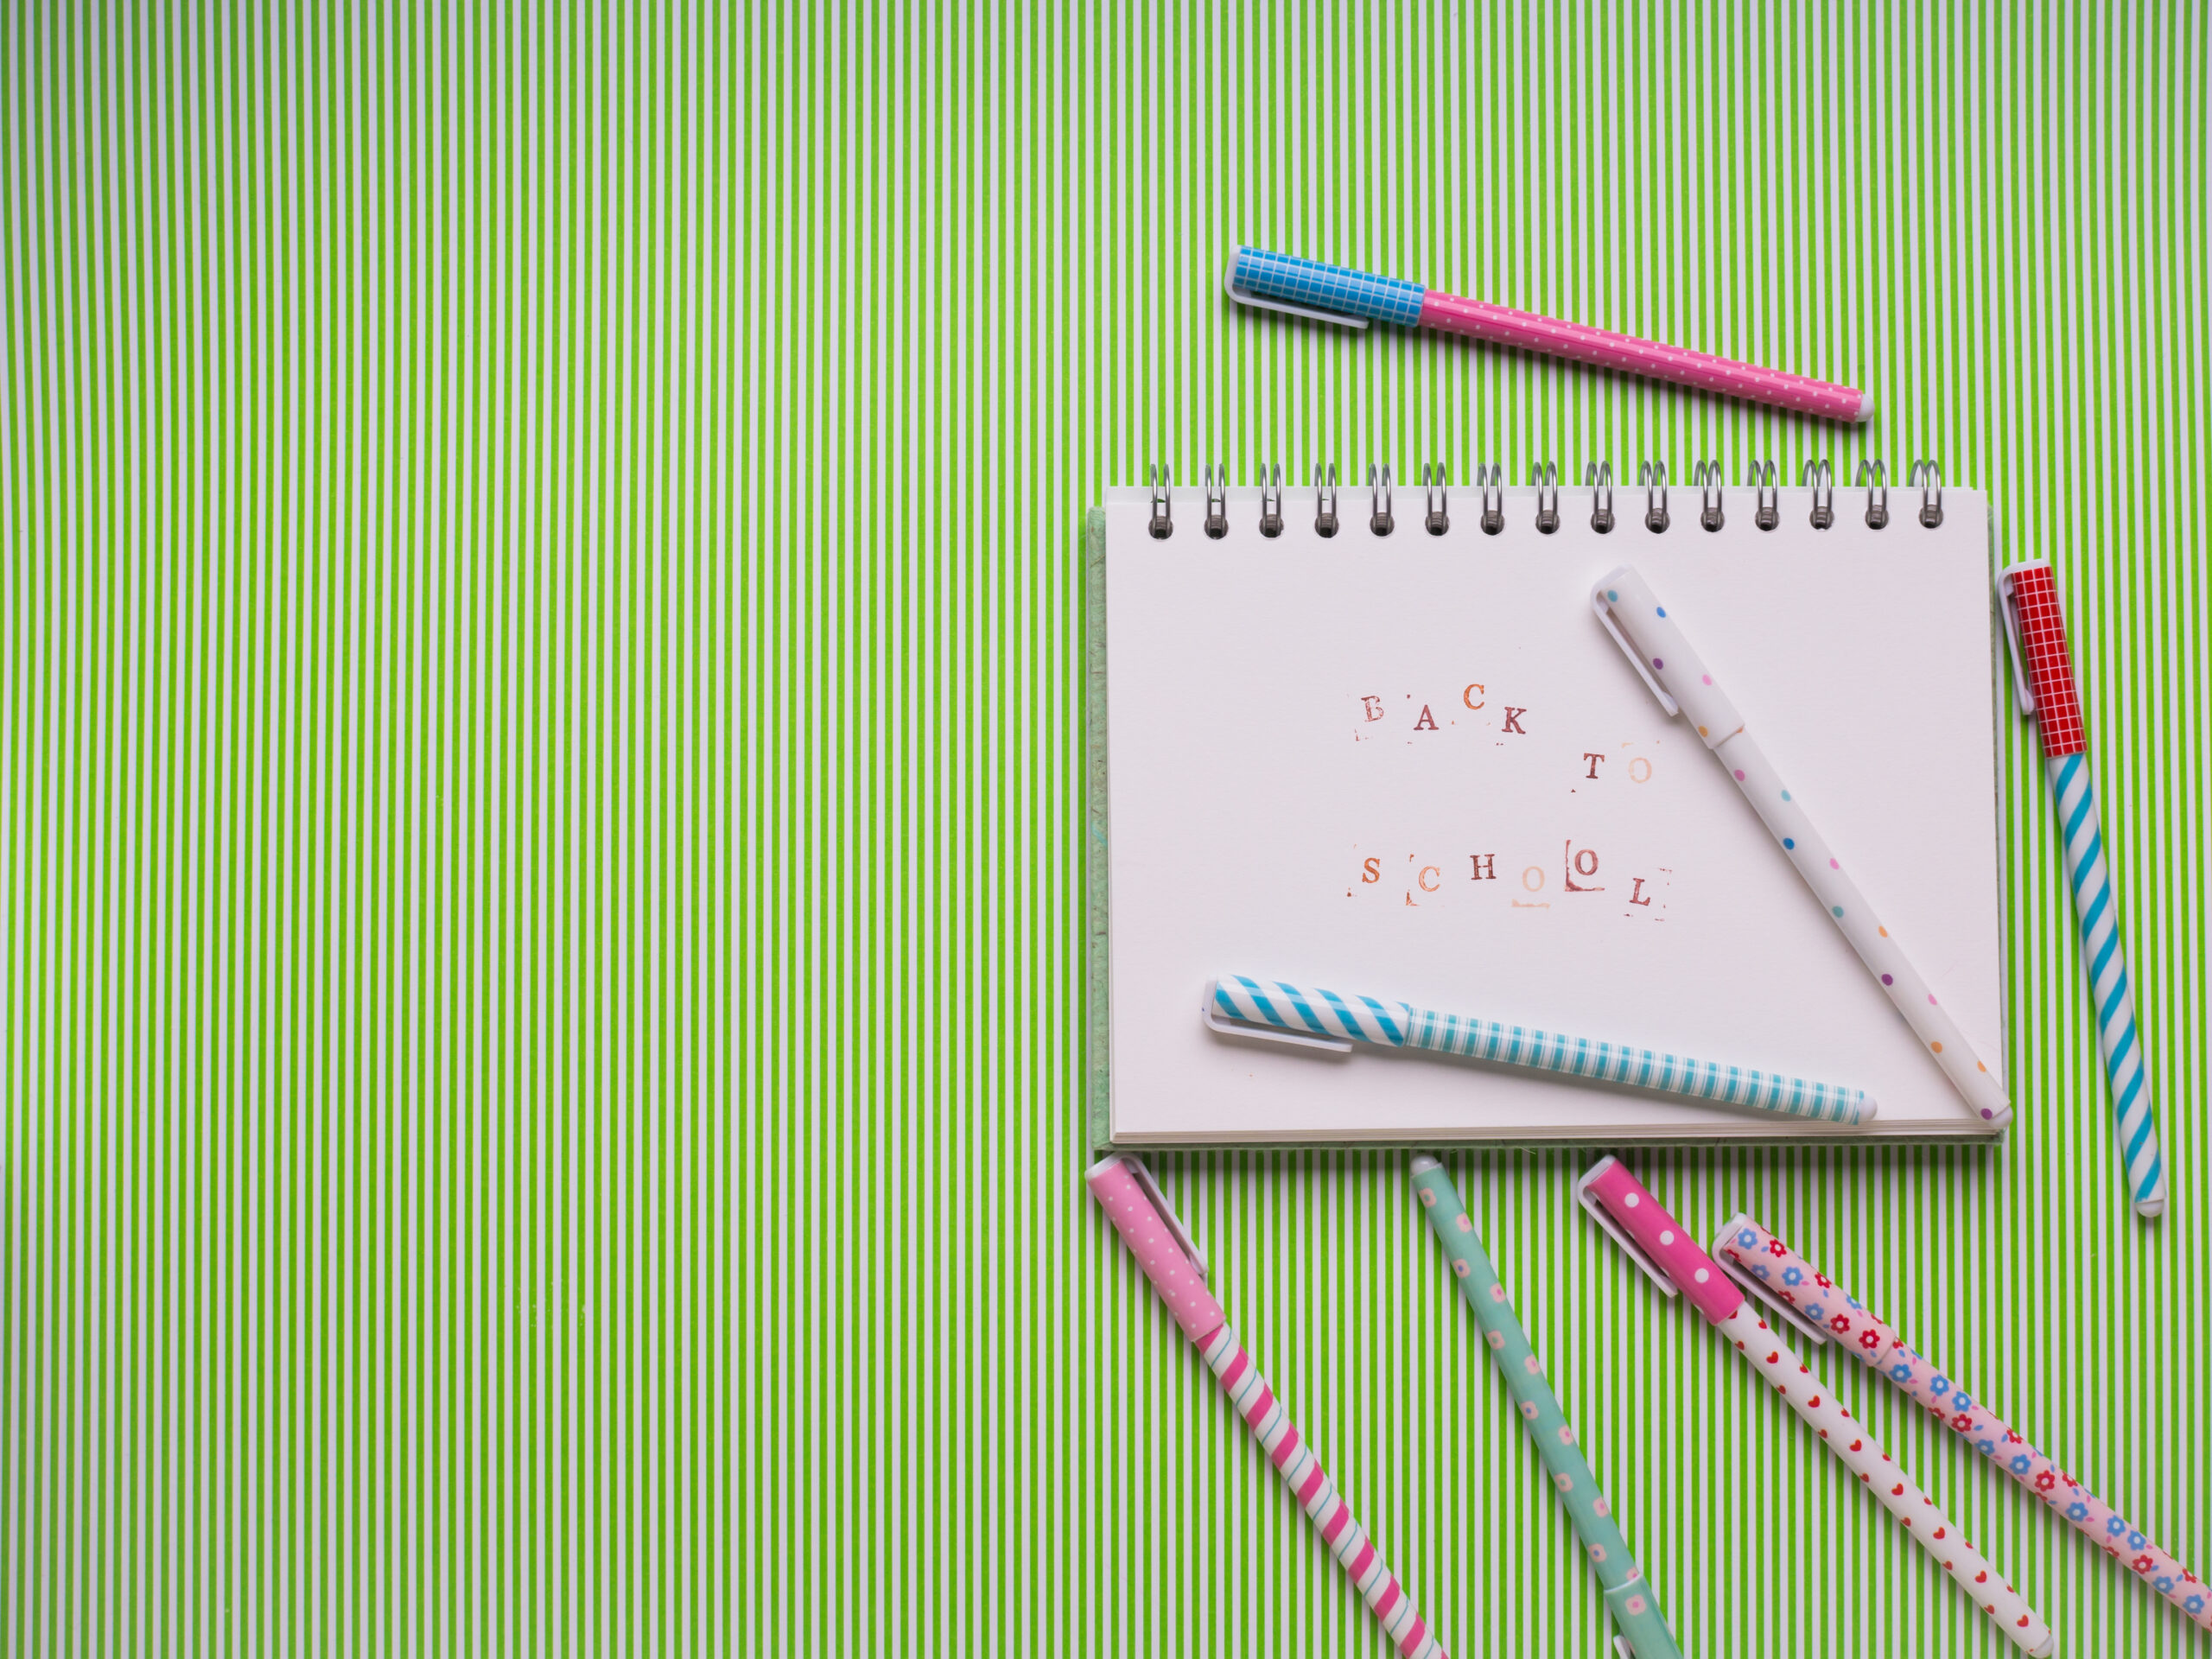 White notebook on a green table with pens scattered around